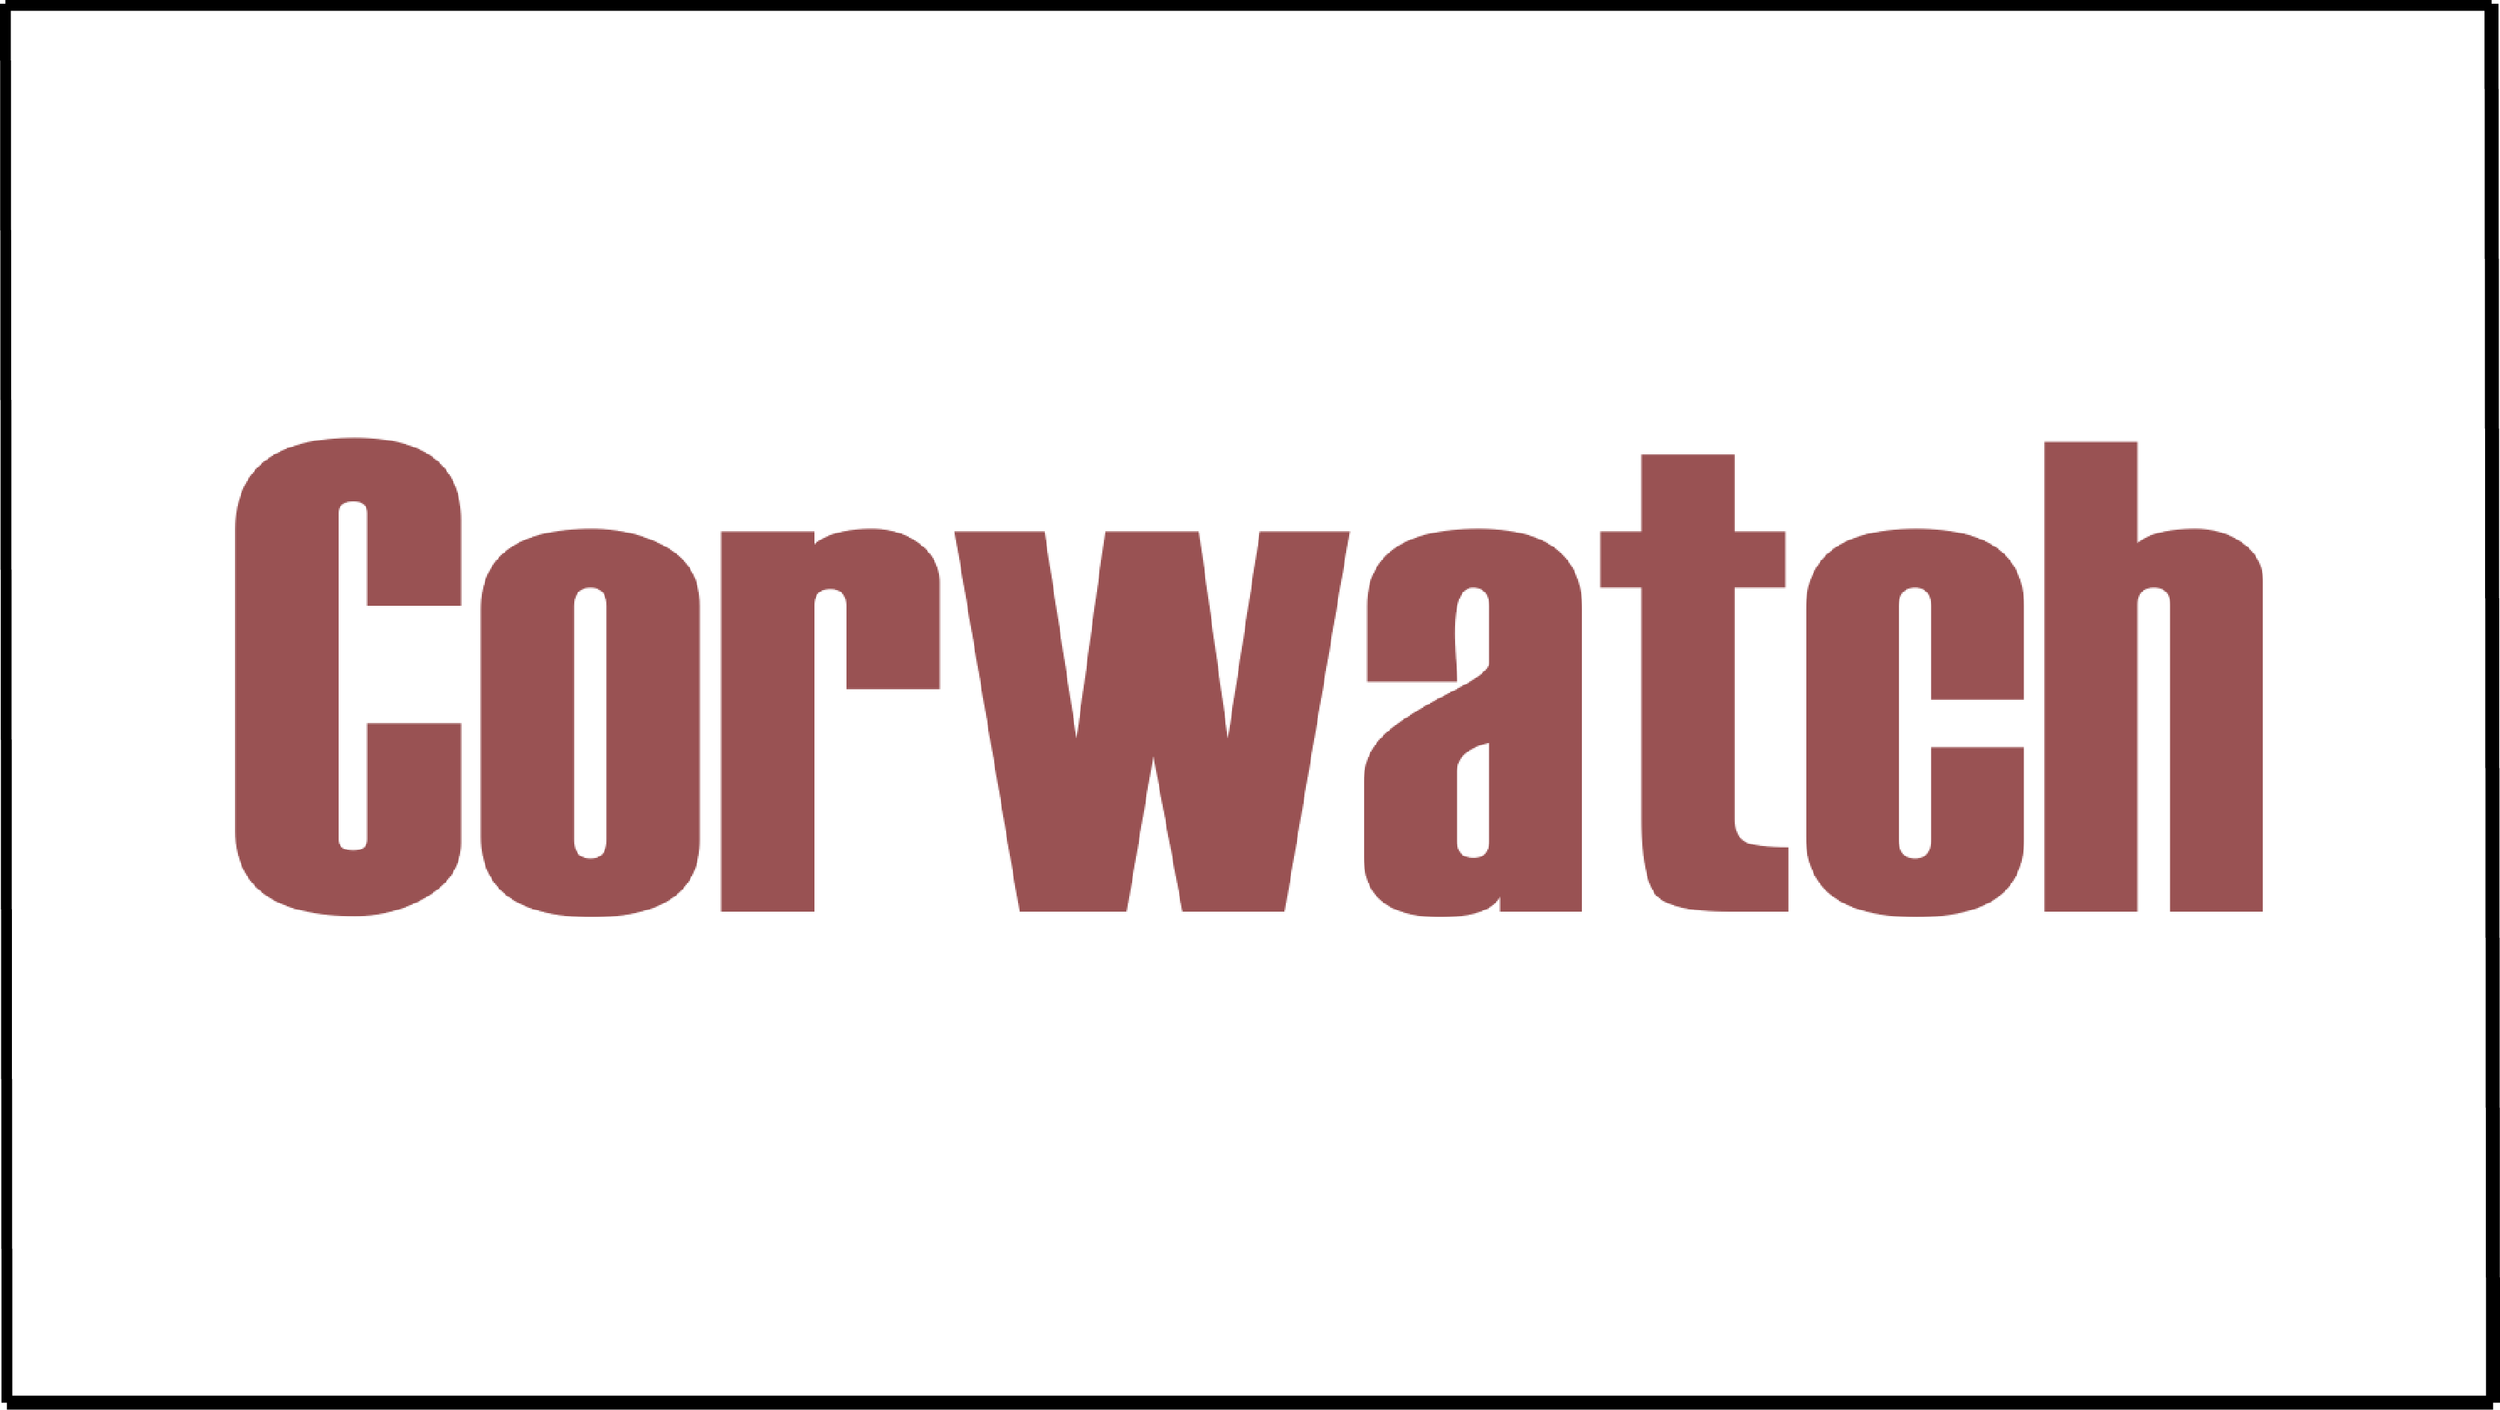 Corwatch.png